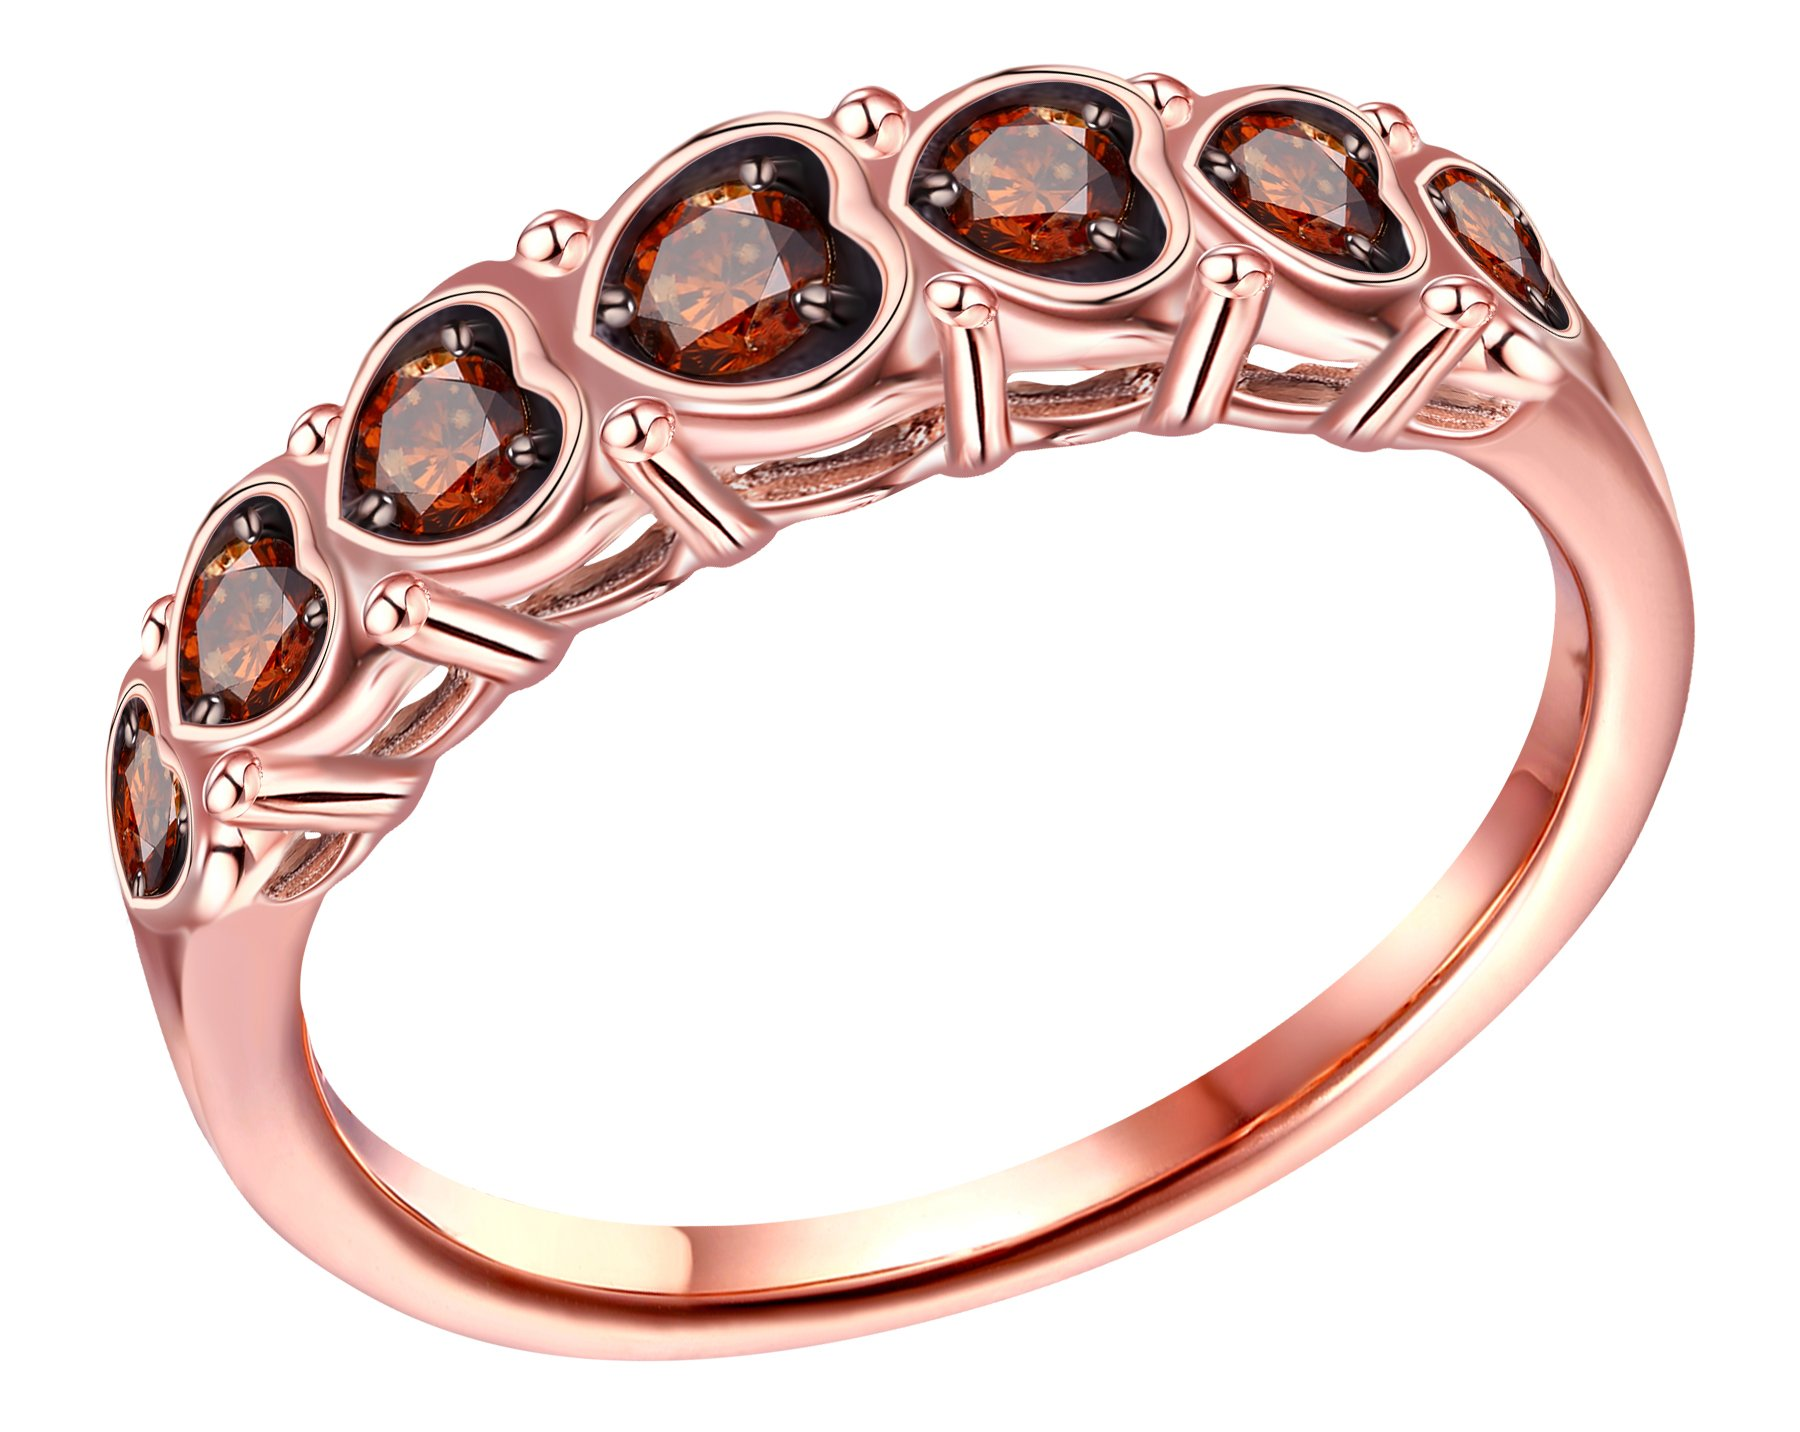 Prism Jewel 0.25 Carat Cognac Diamond Designer Anniversary Ring, Rose Gold Plated Silver, Size 6